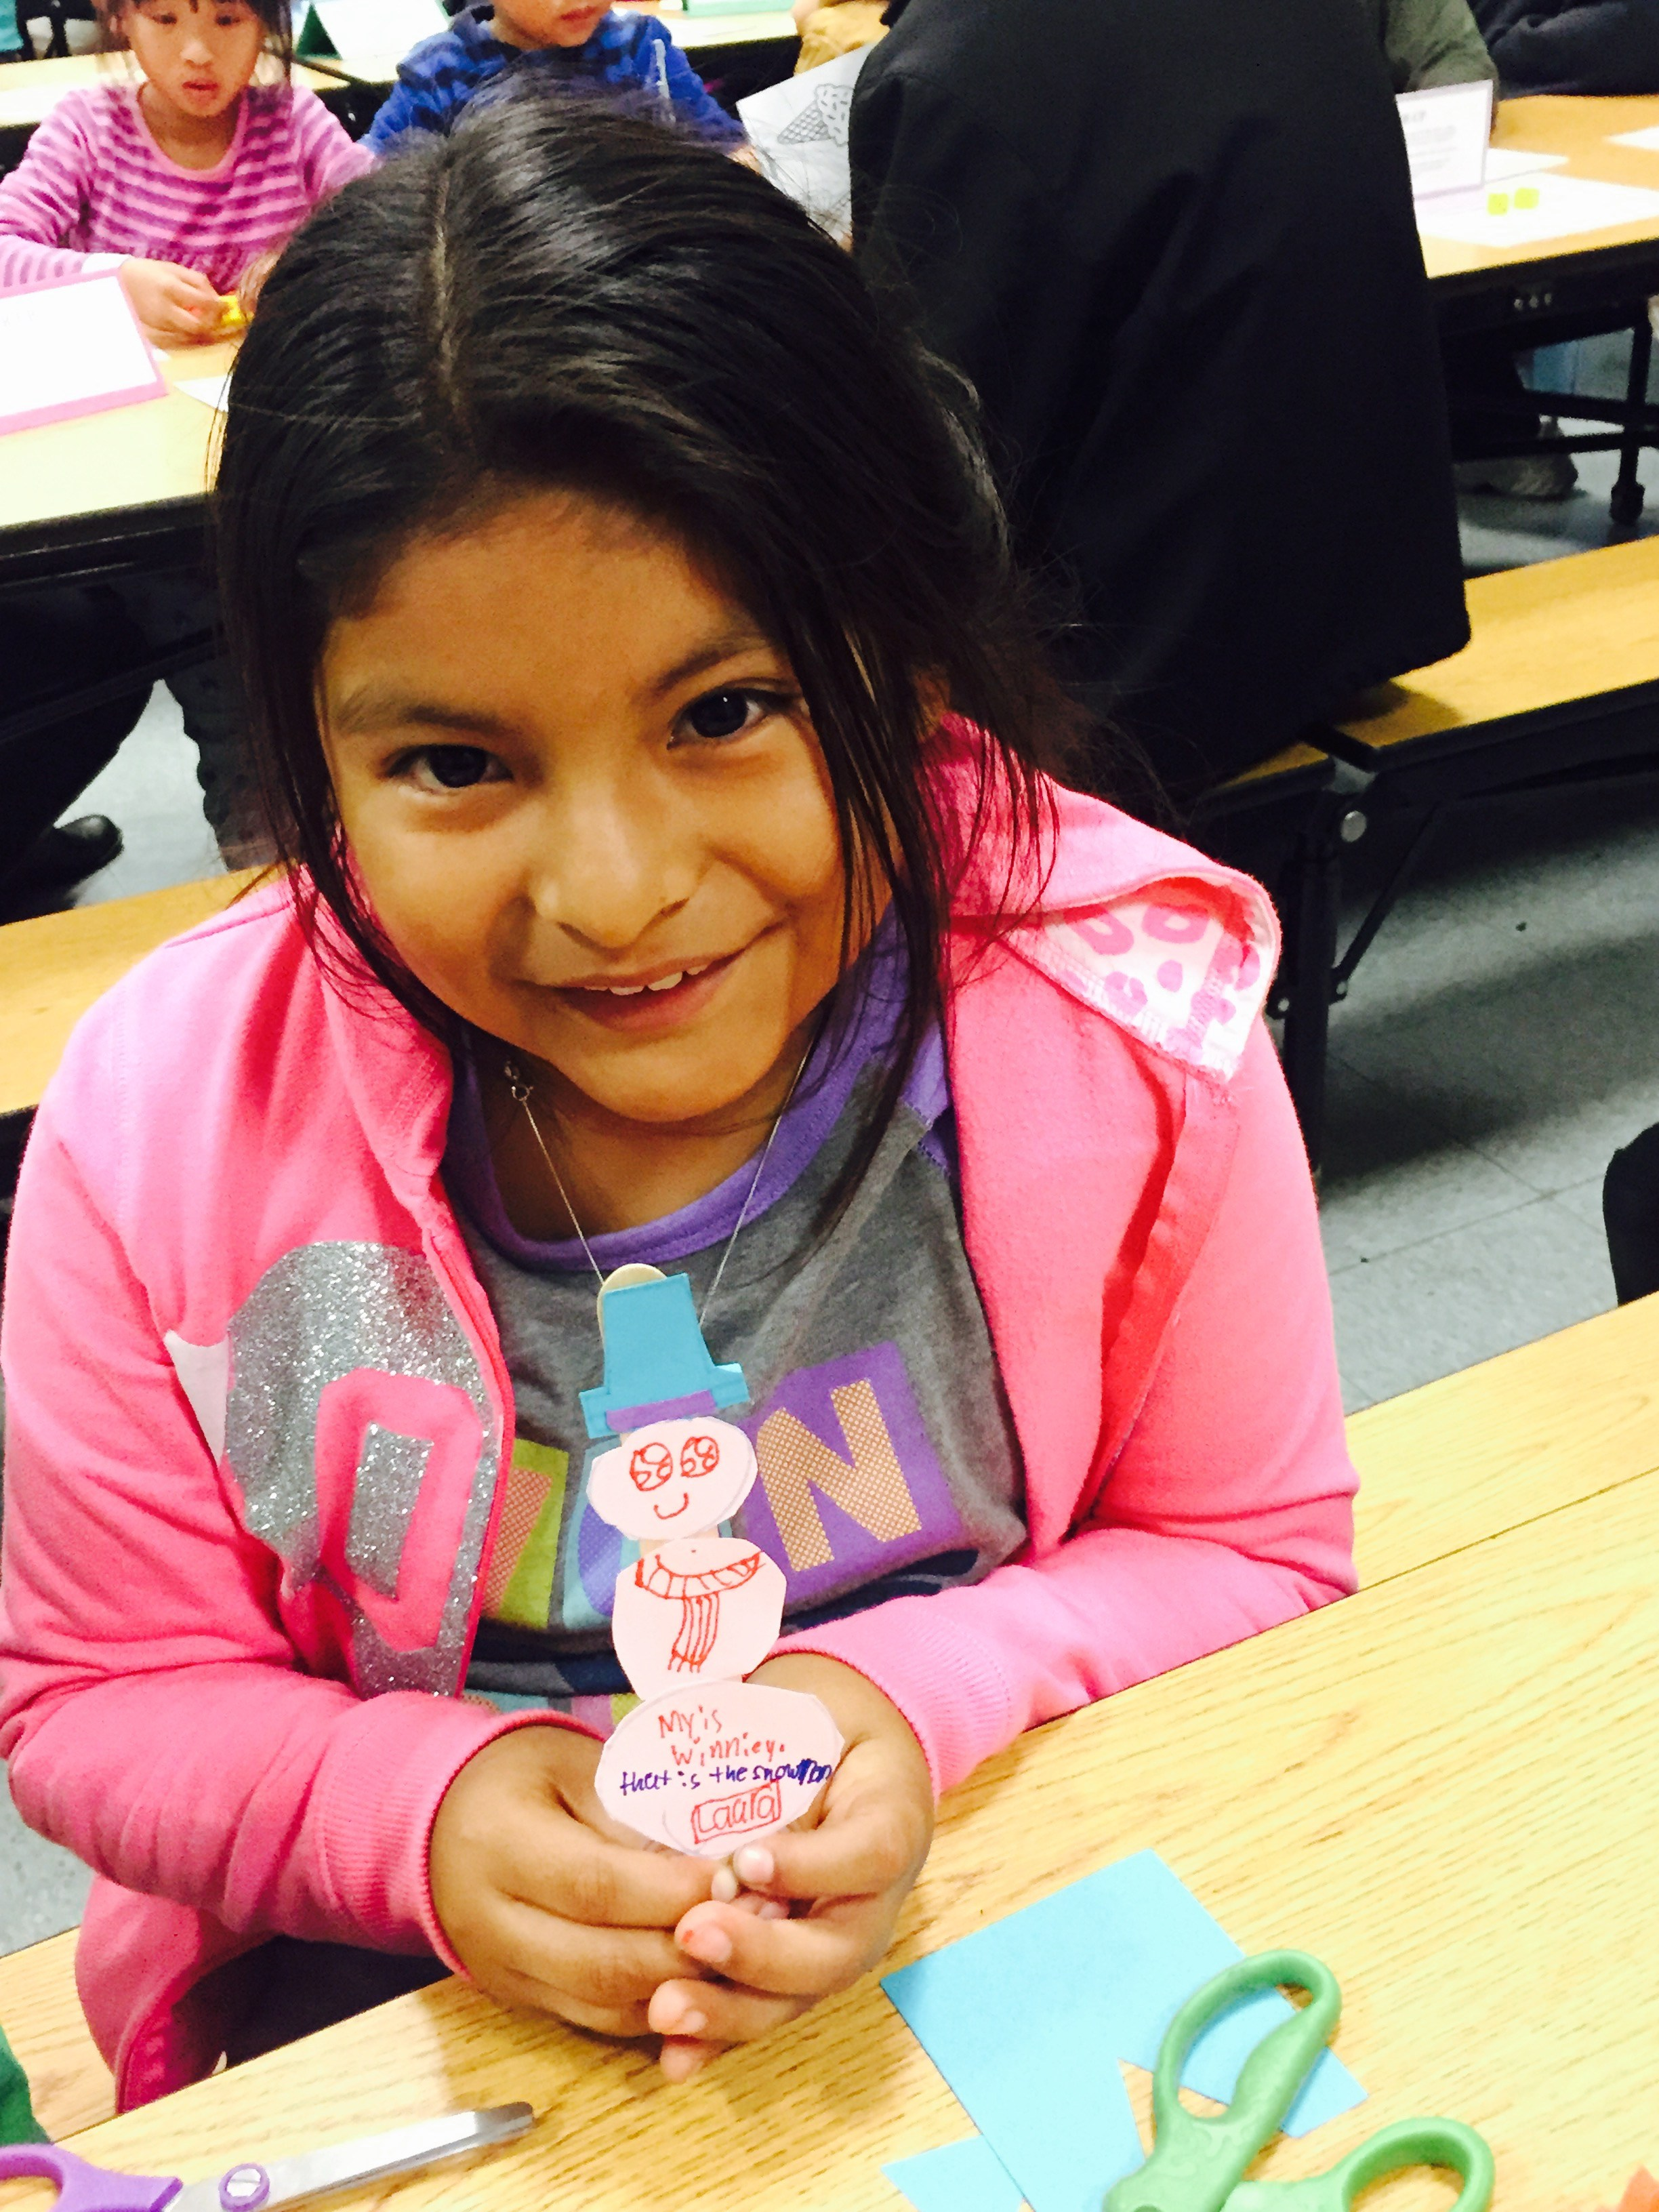 All smiles at Family Math night.